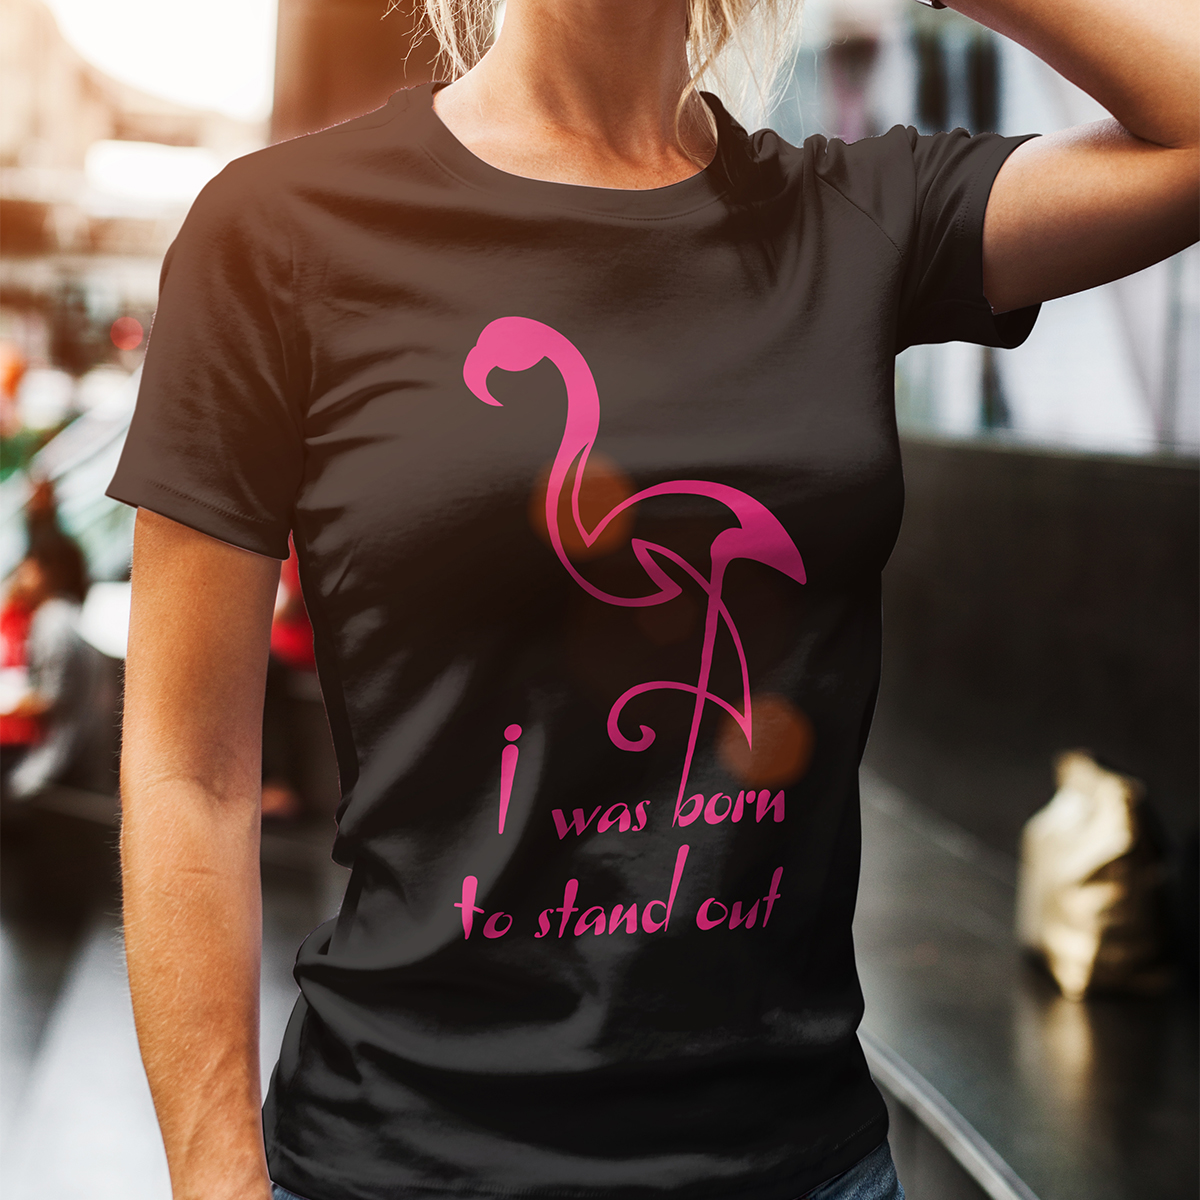 Tricou Femei Flamingo Stand Out2